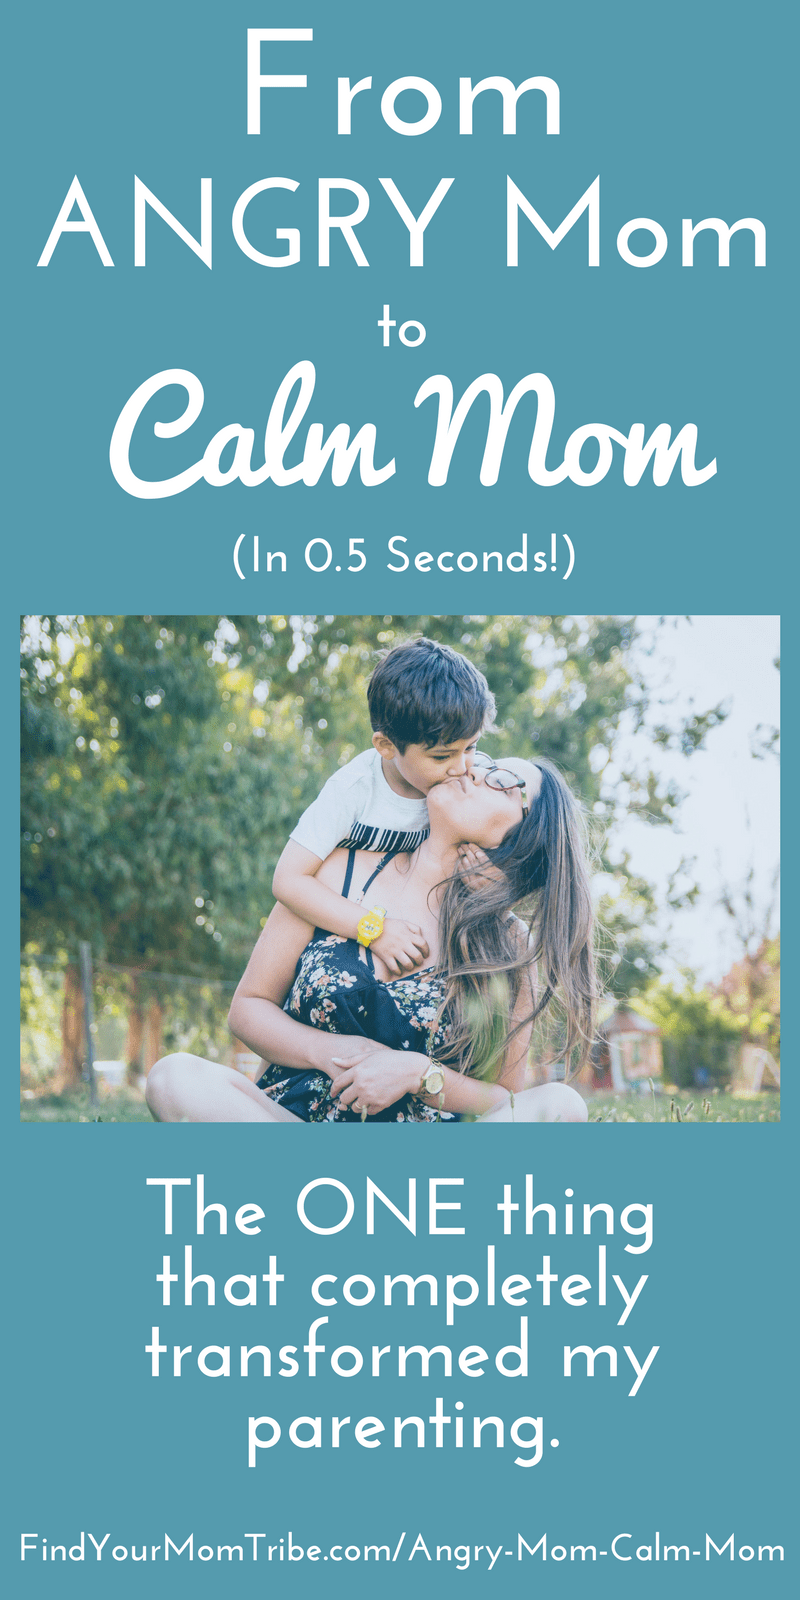 Do you struggle with nagging or yelling at your kids? This simple trick was a game-changer for me! Peaceful parenting | Positive discipline | Gentle parenting | how to stop yelling at your kids | anger management for moms| Note: This article can be read at: Findyourmomtribe.com/angry-mom-calm-mom